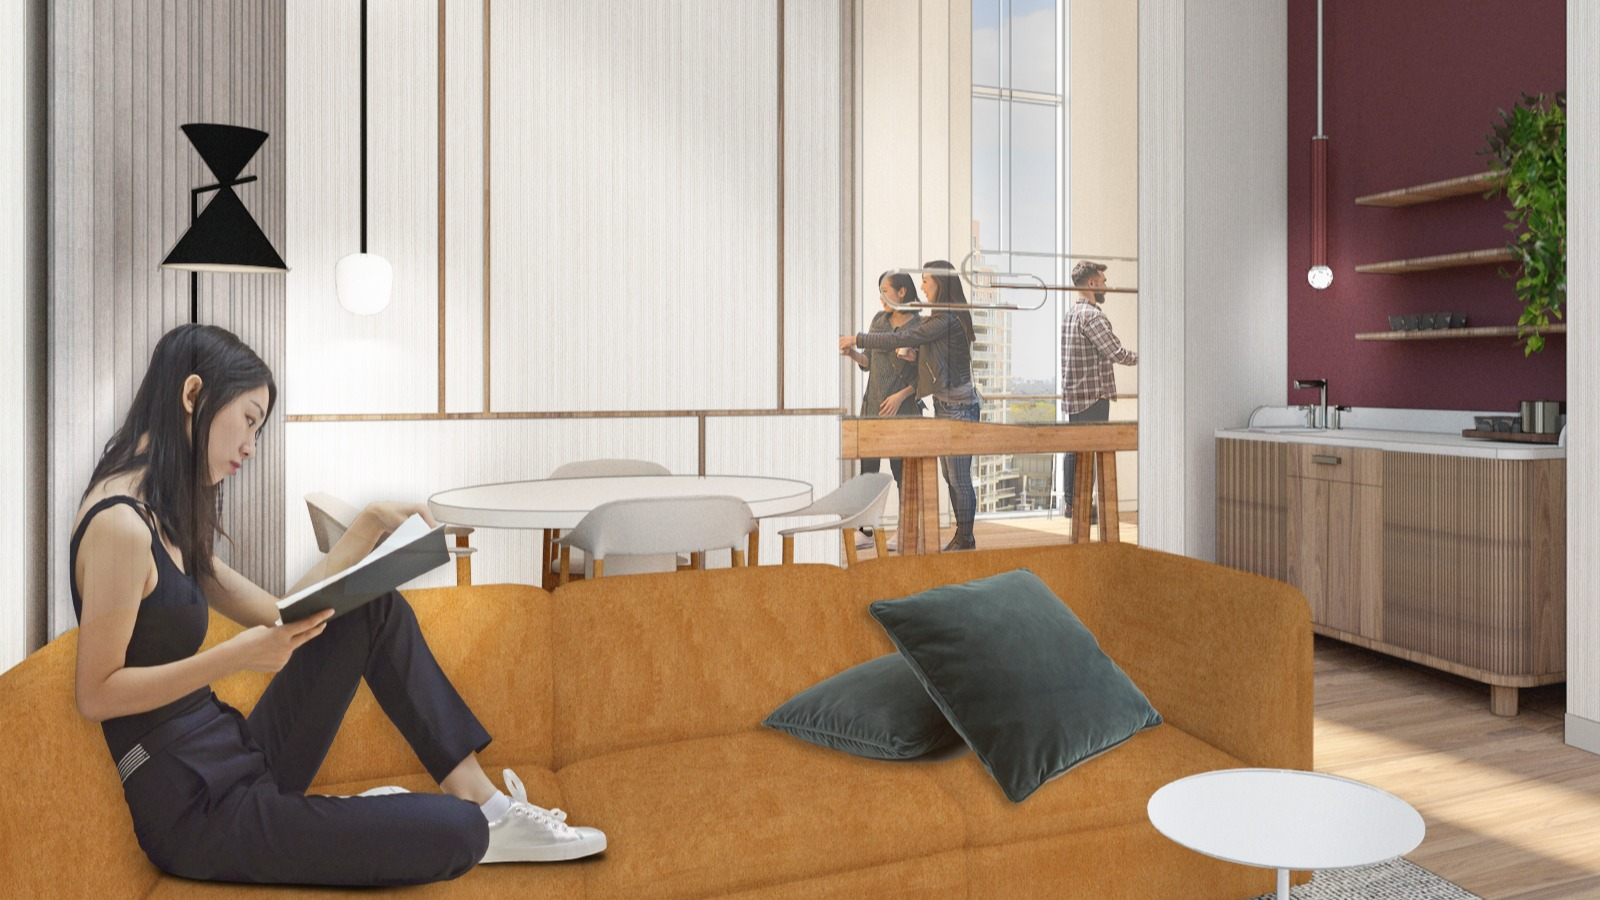 Rendering of lounge area